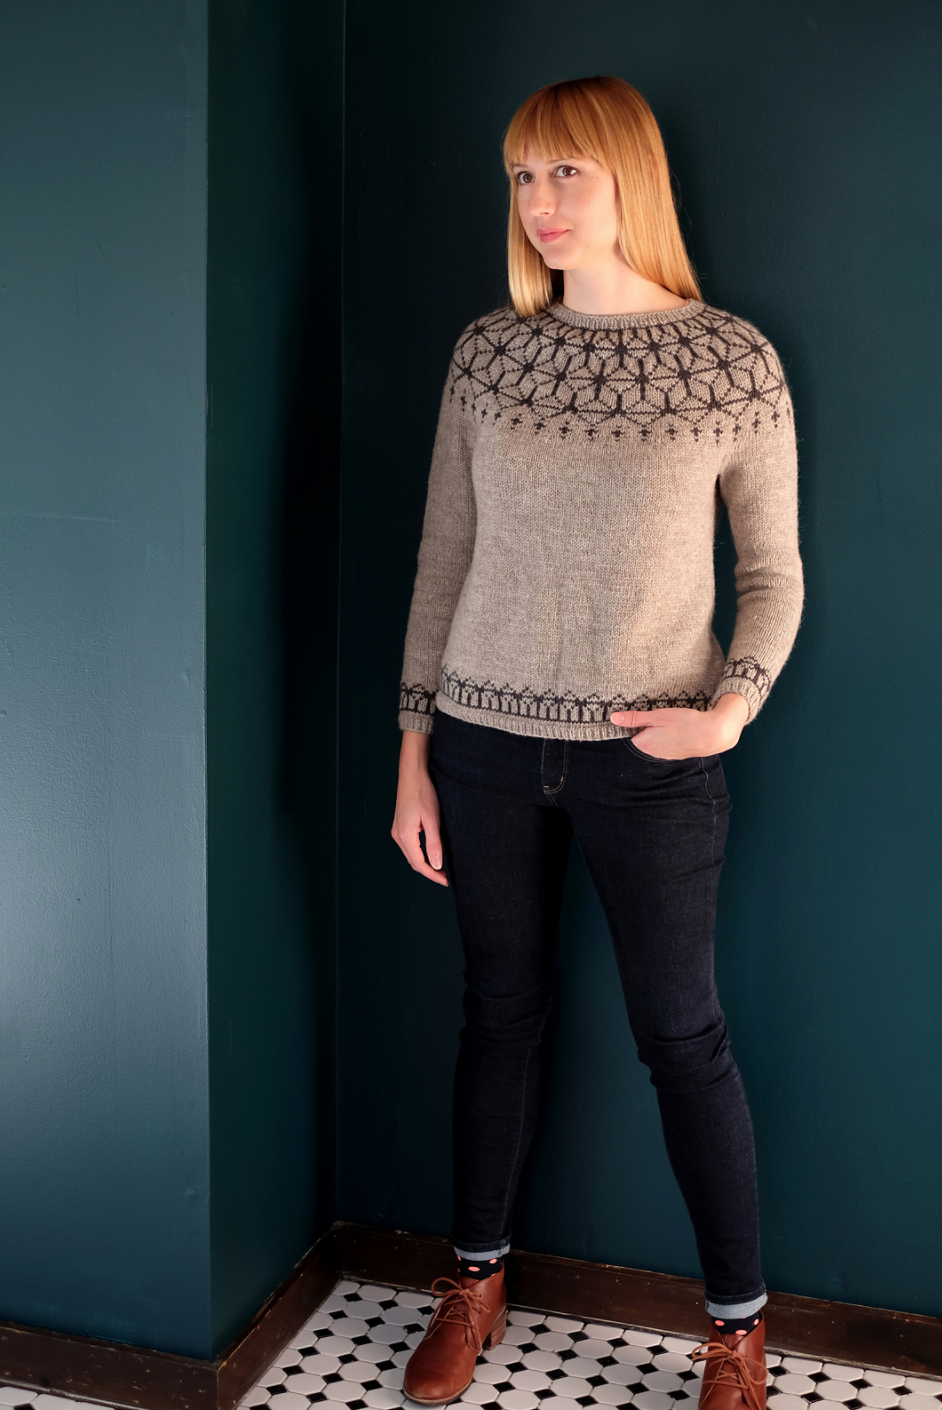 Tensho Pullover by Beatrice Perron Dahlen